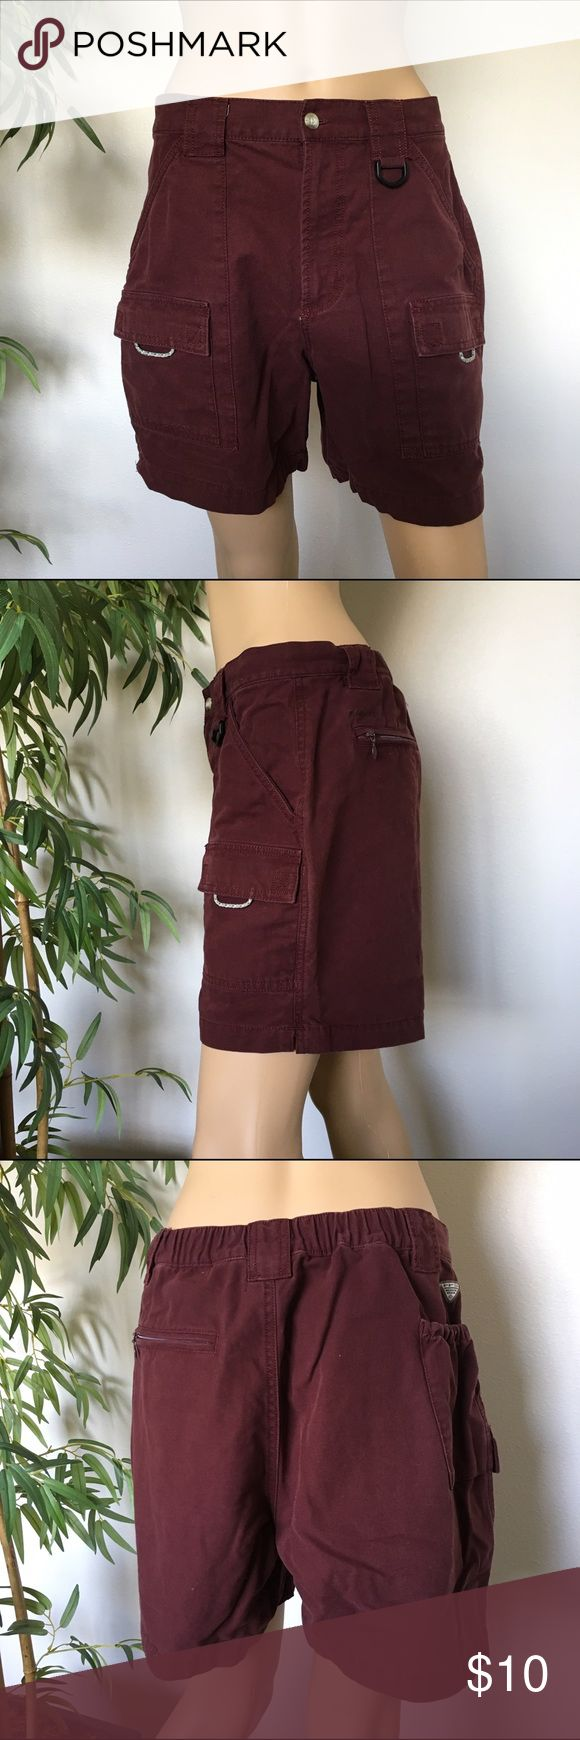 Columbia Burgundy Shorts size M 6 L Pre loved in great 👍 condition size M 6 burgundy color shorts Columbia Shorts